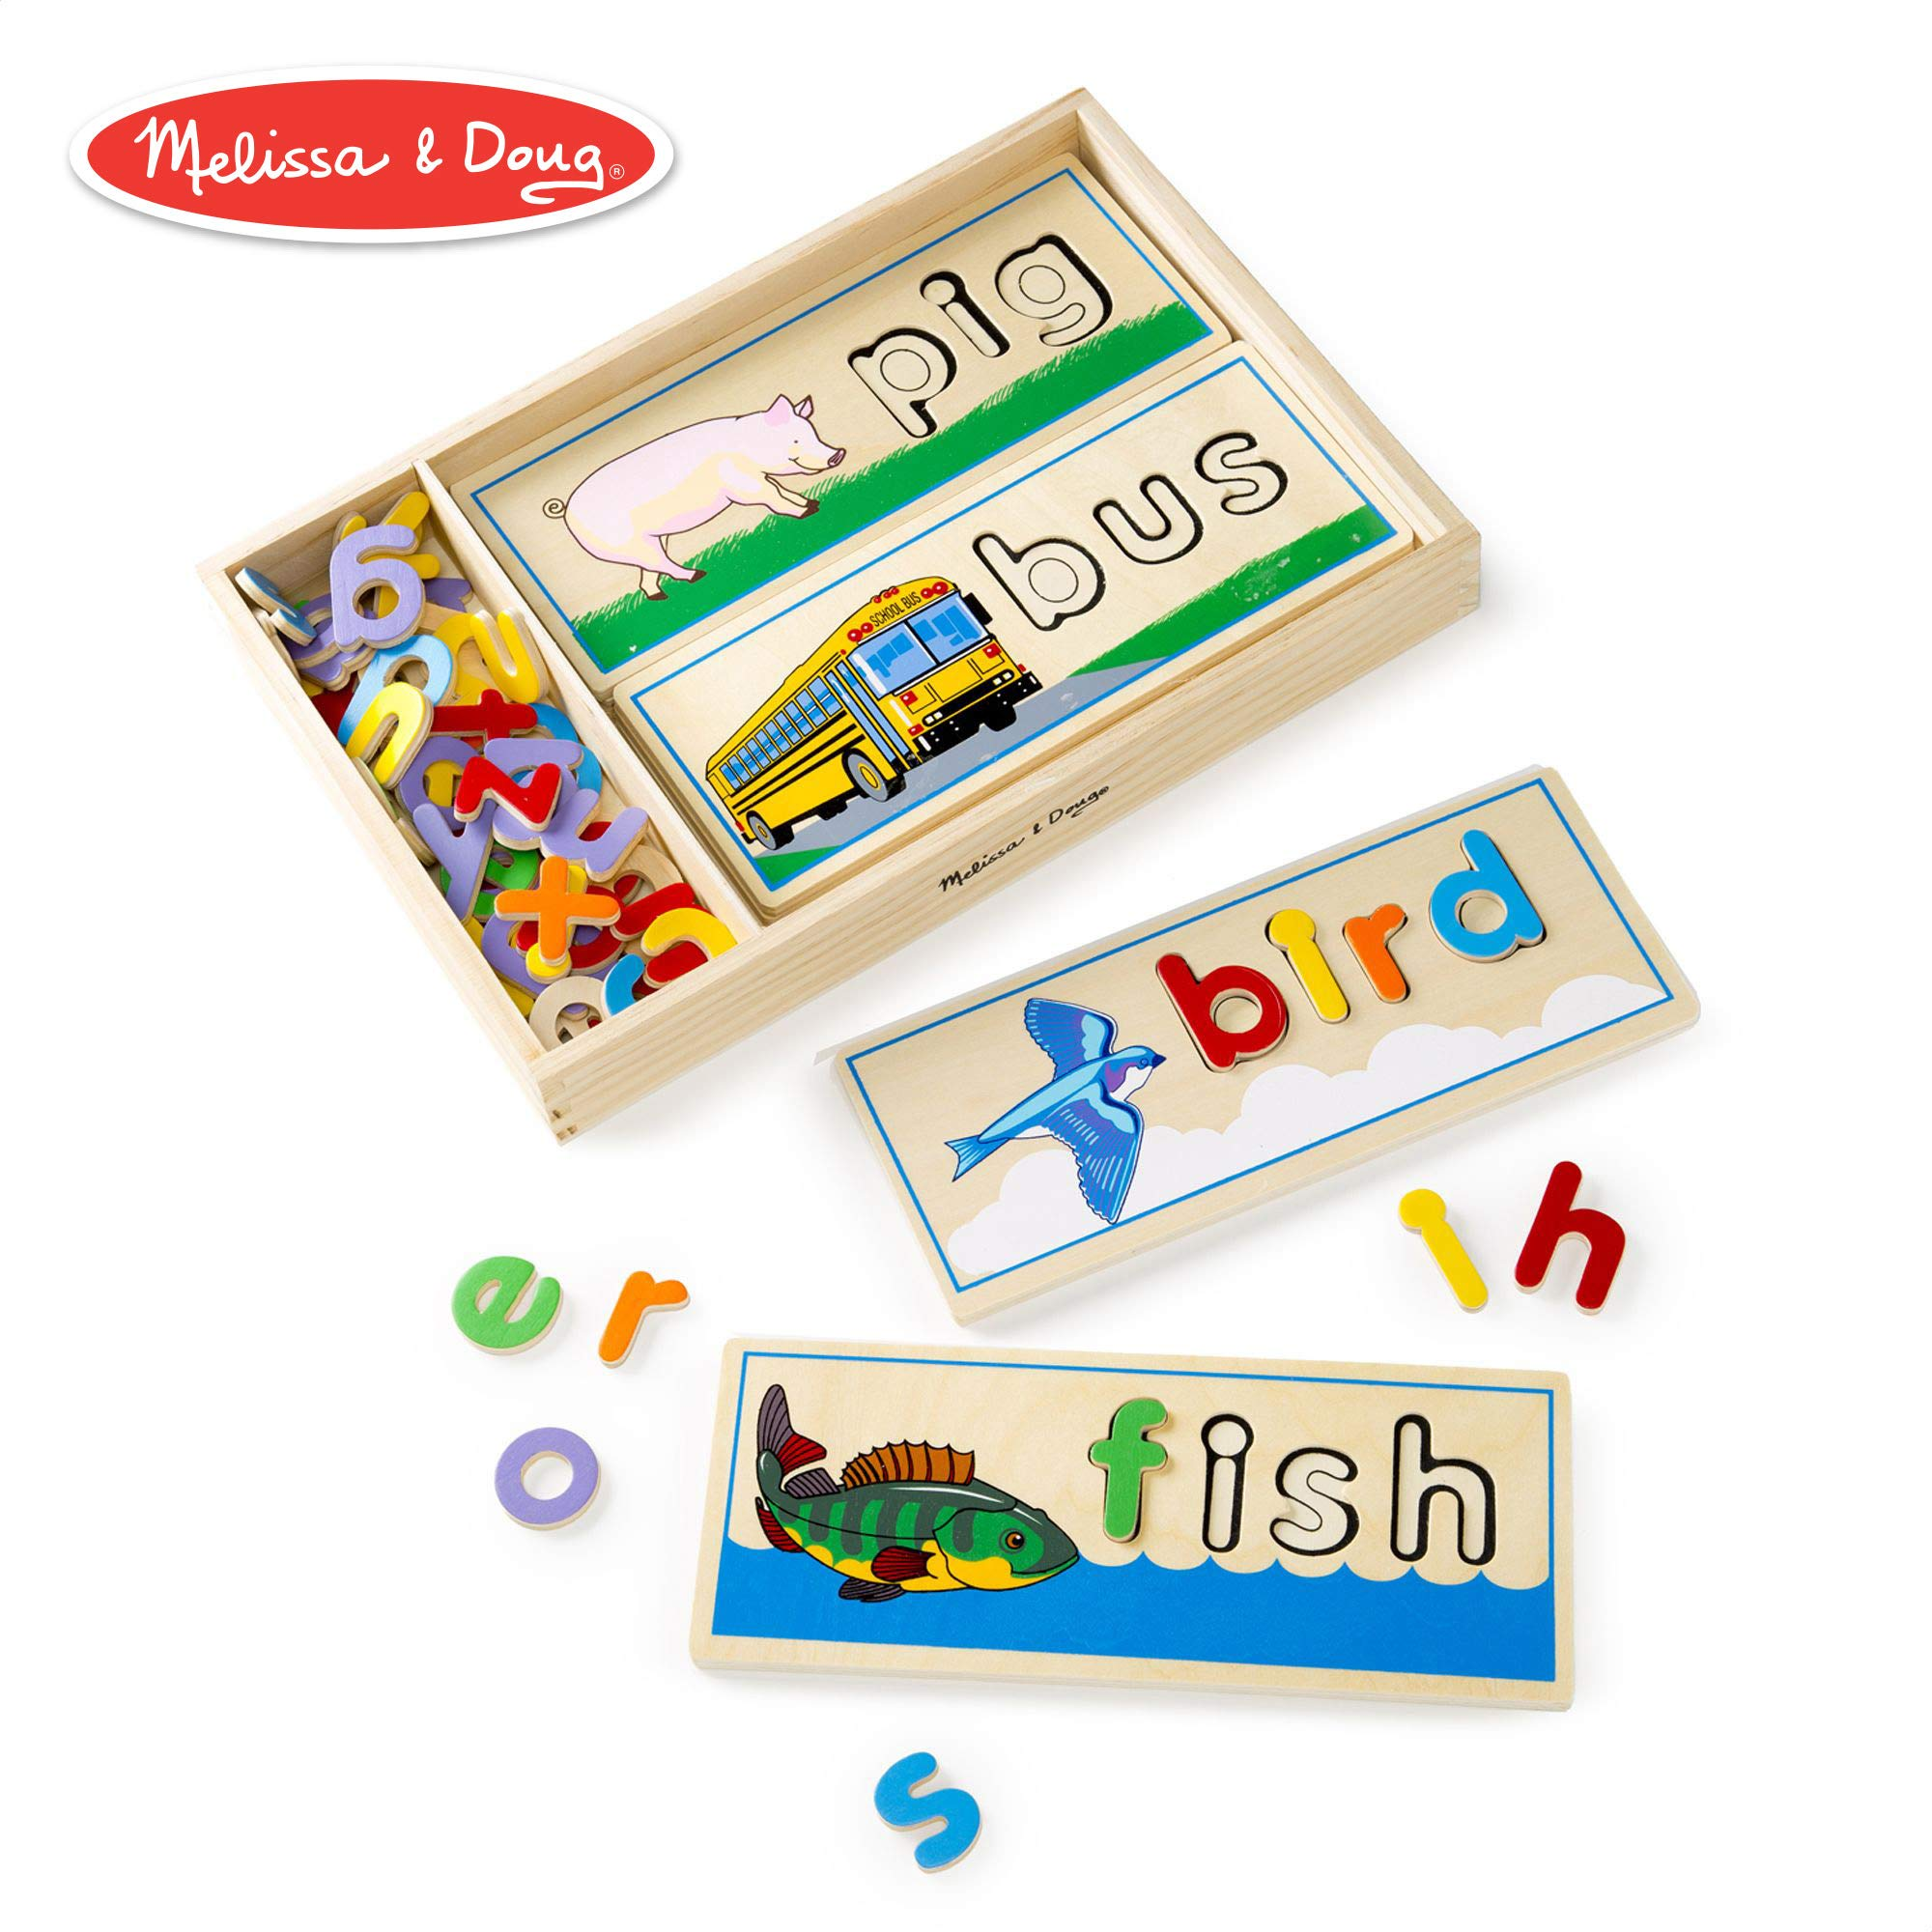 Melissa & Doug See & Spell Learning Toy (Developmental Toys, Wooden Case, Develops Vocabulary and Spelling Skills, 50+ Wooden Pieces) by Melissa & Doug